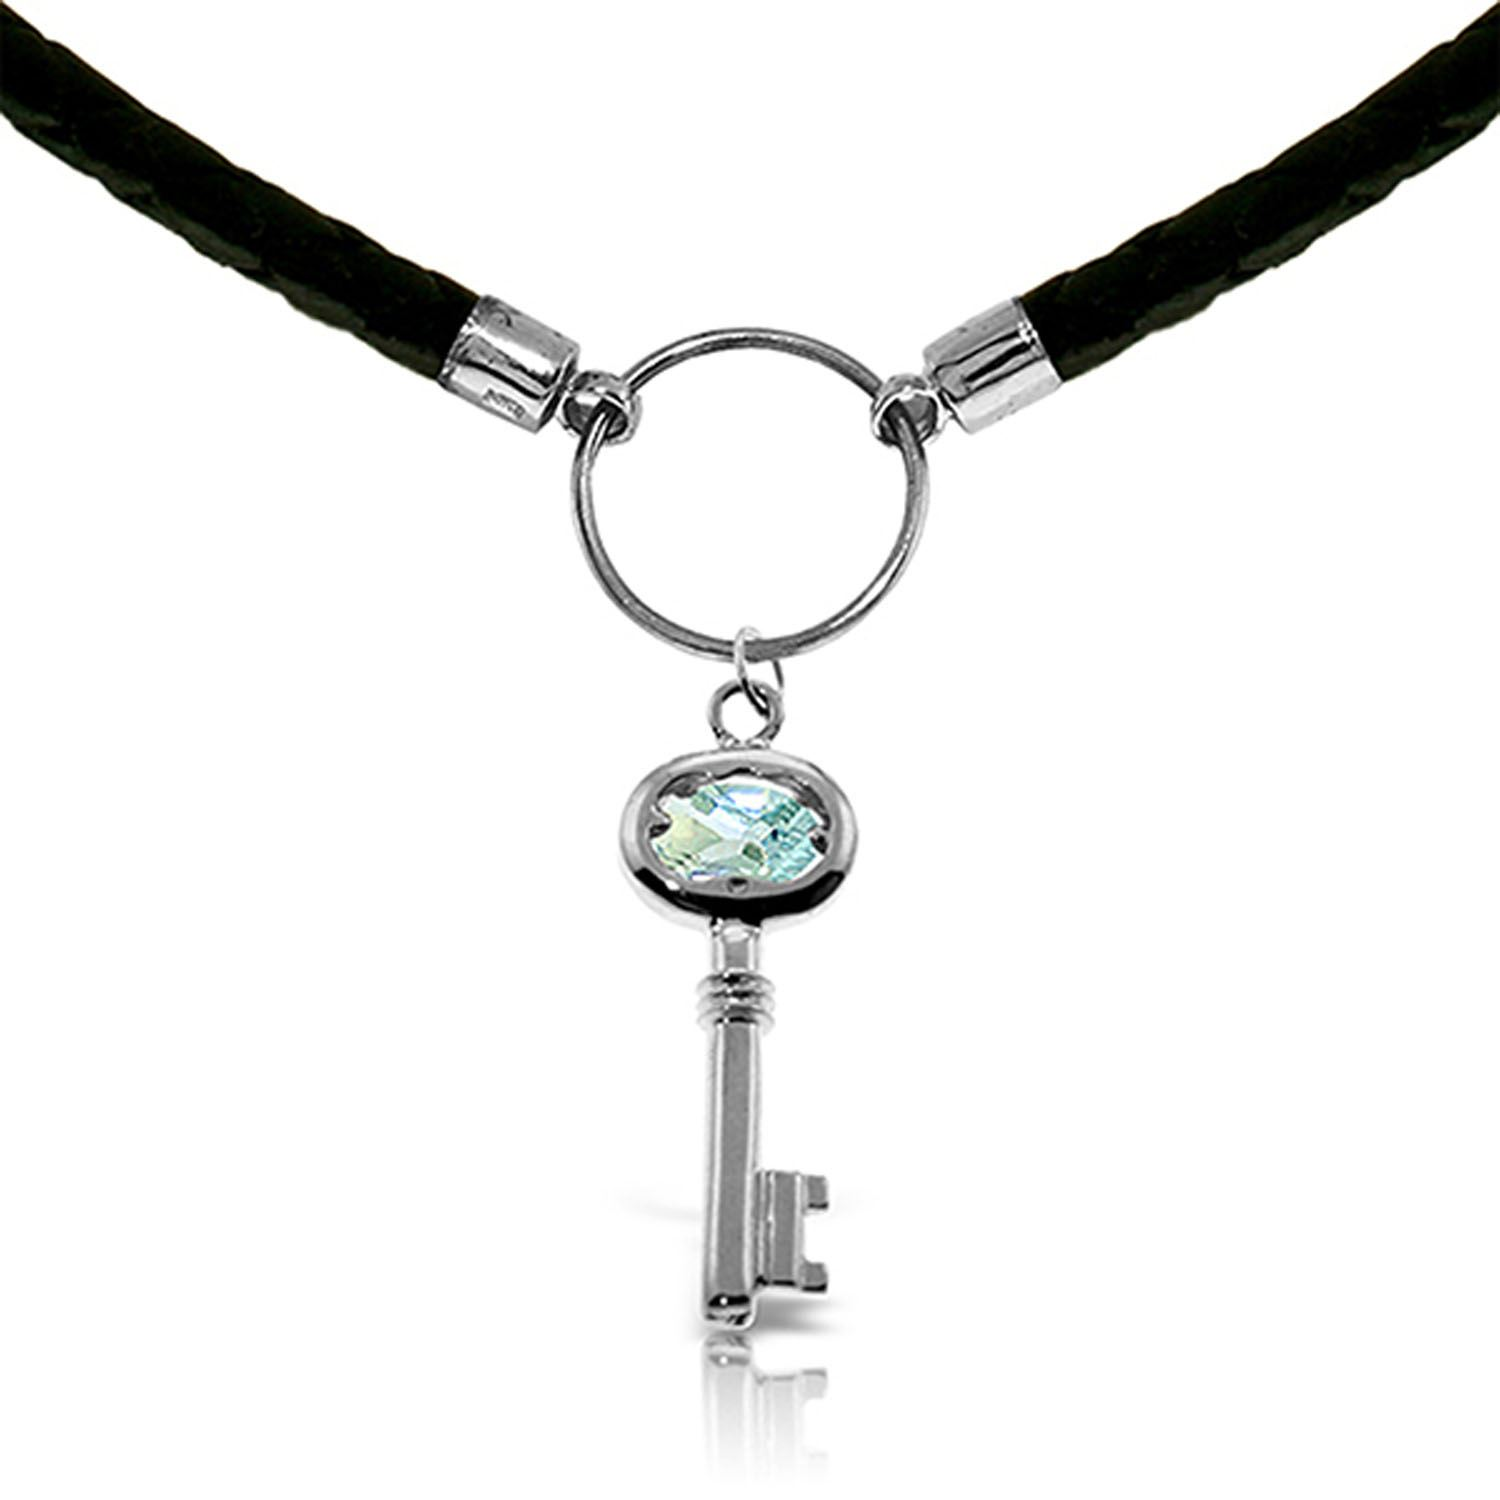 ALARRI 0.5 CTW 14K Solid White Gold Leather Key Necklace Aquamarine with 18 Inch Chain Length. by ALARRI